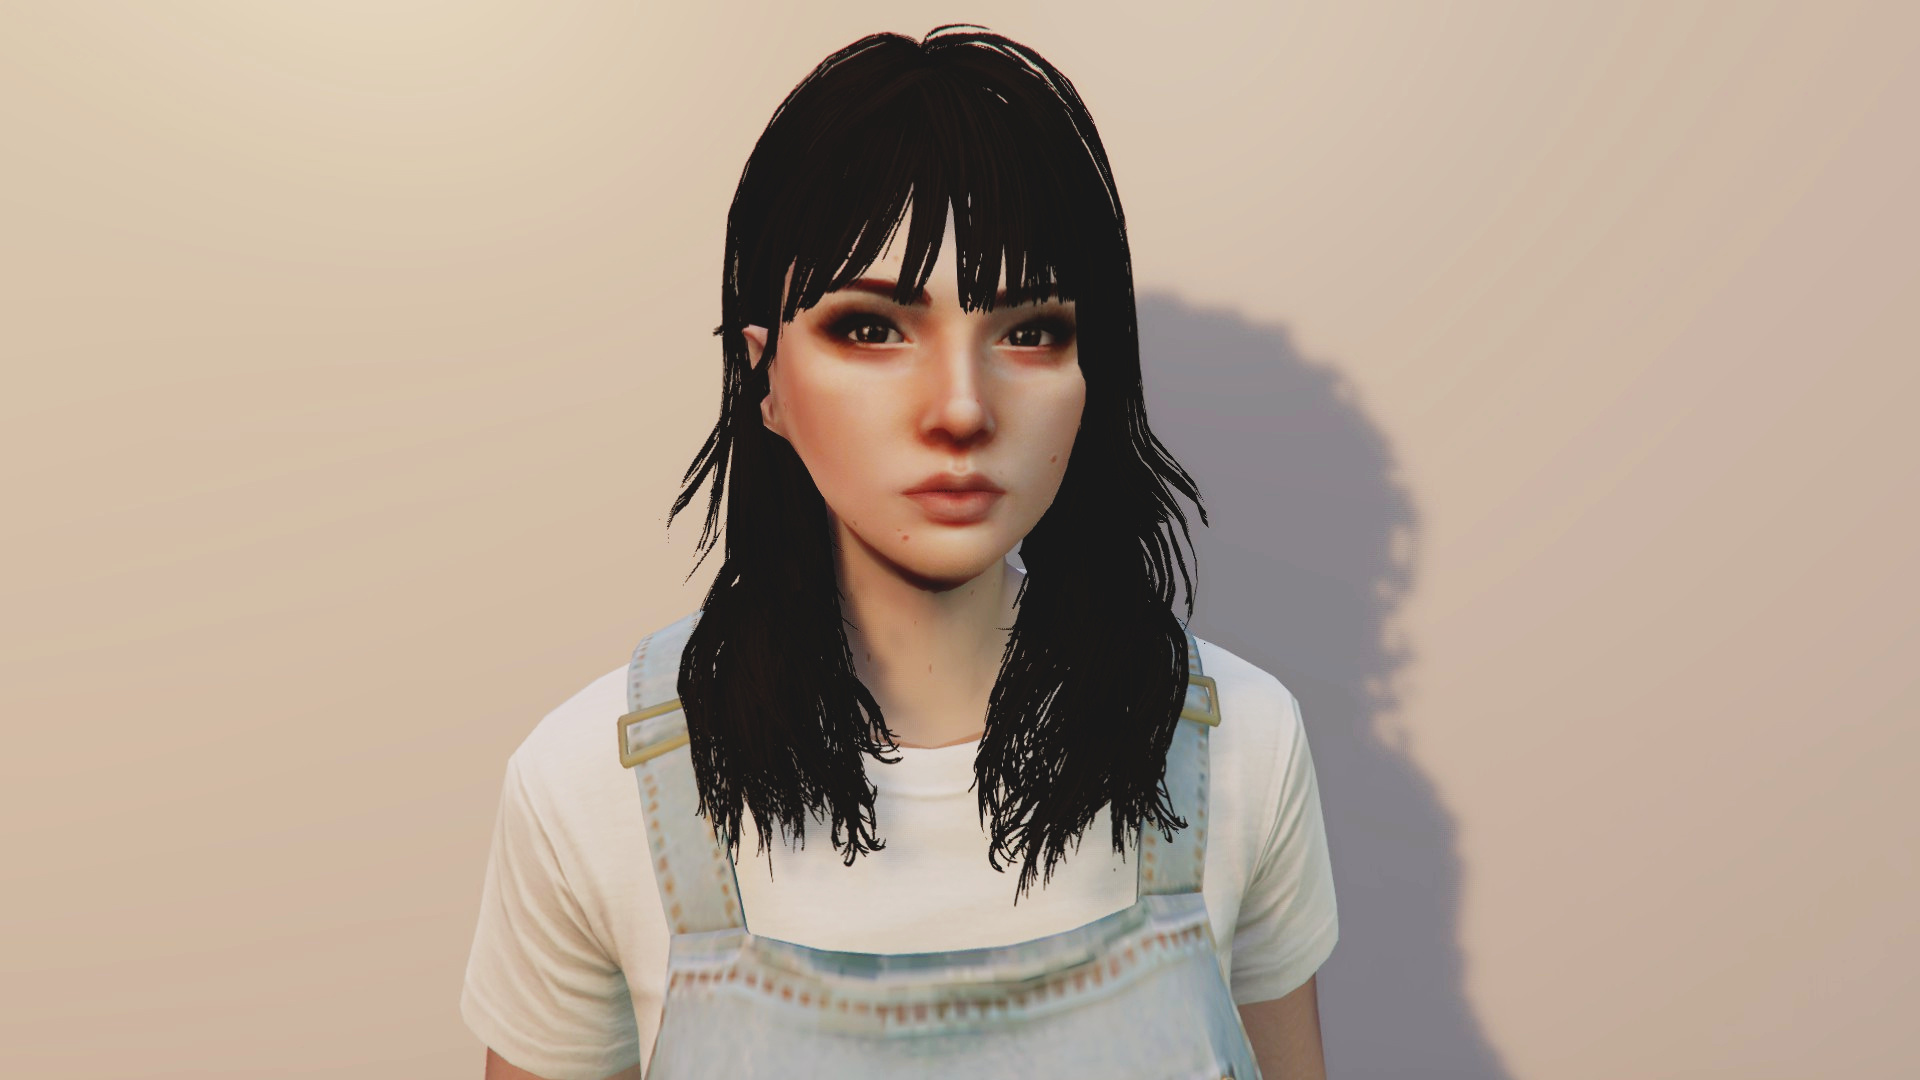 Long Haircut With Bangs For MP Female - GTA5-Mods.com